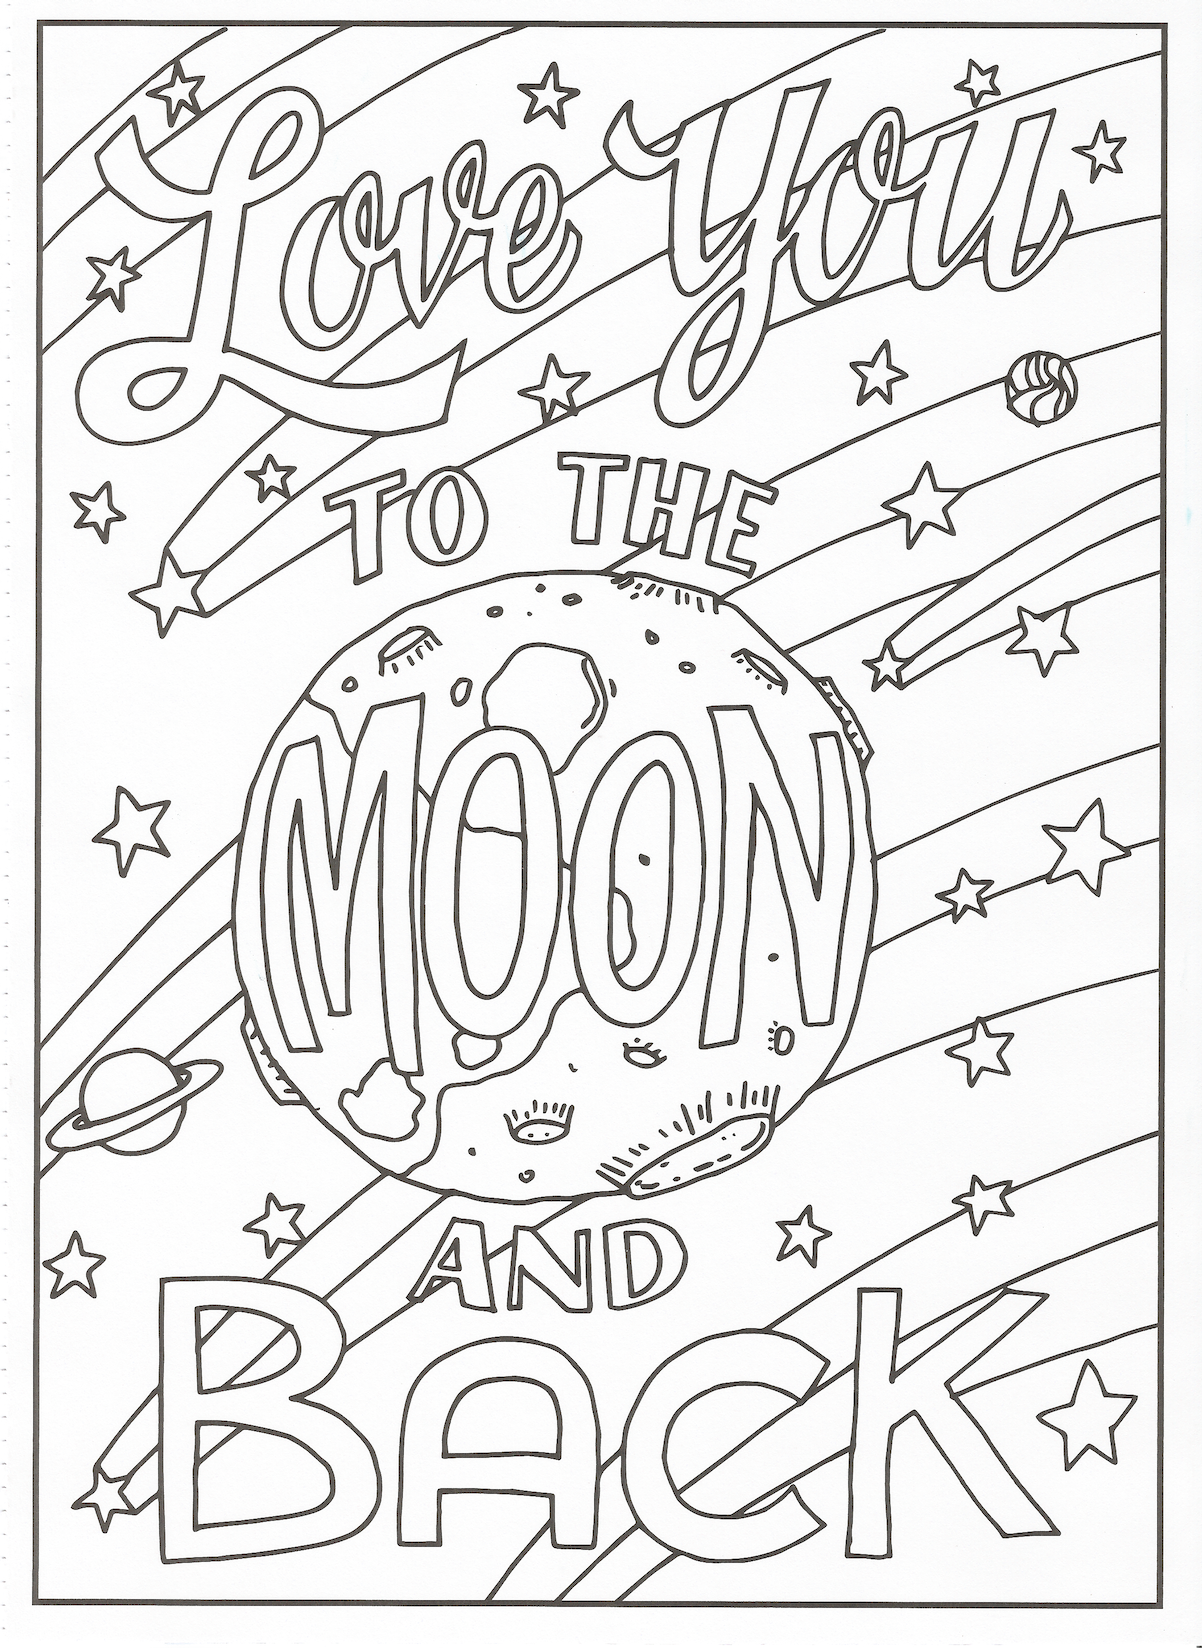 Timeless creations creative quotes coloring page love you to the moon and back